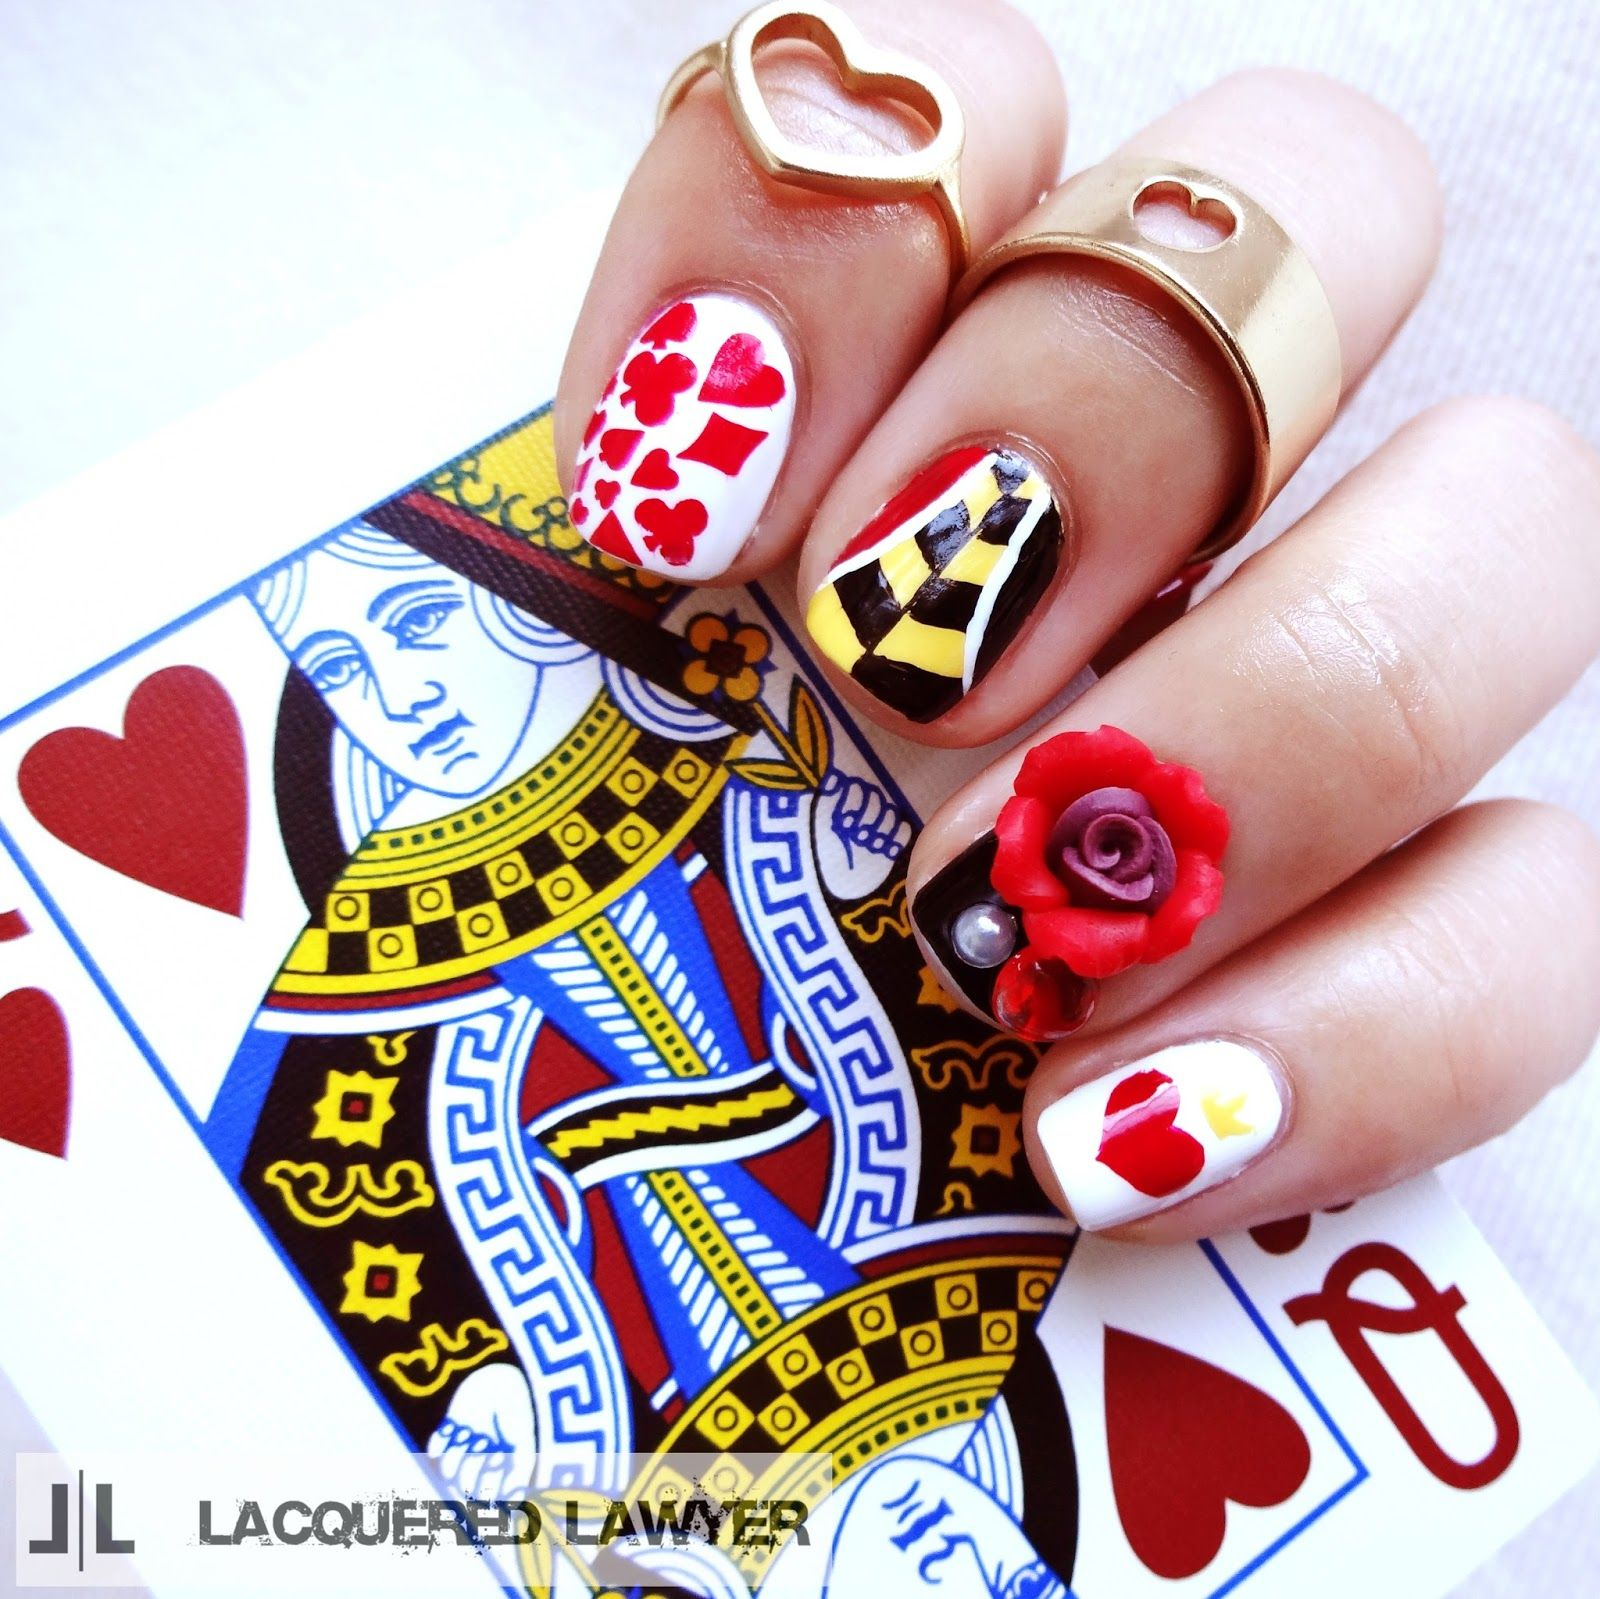 Queen of Hearts | Nail art blog, Art blog and Lawyer